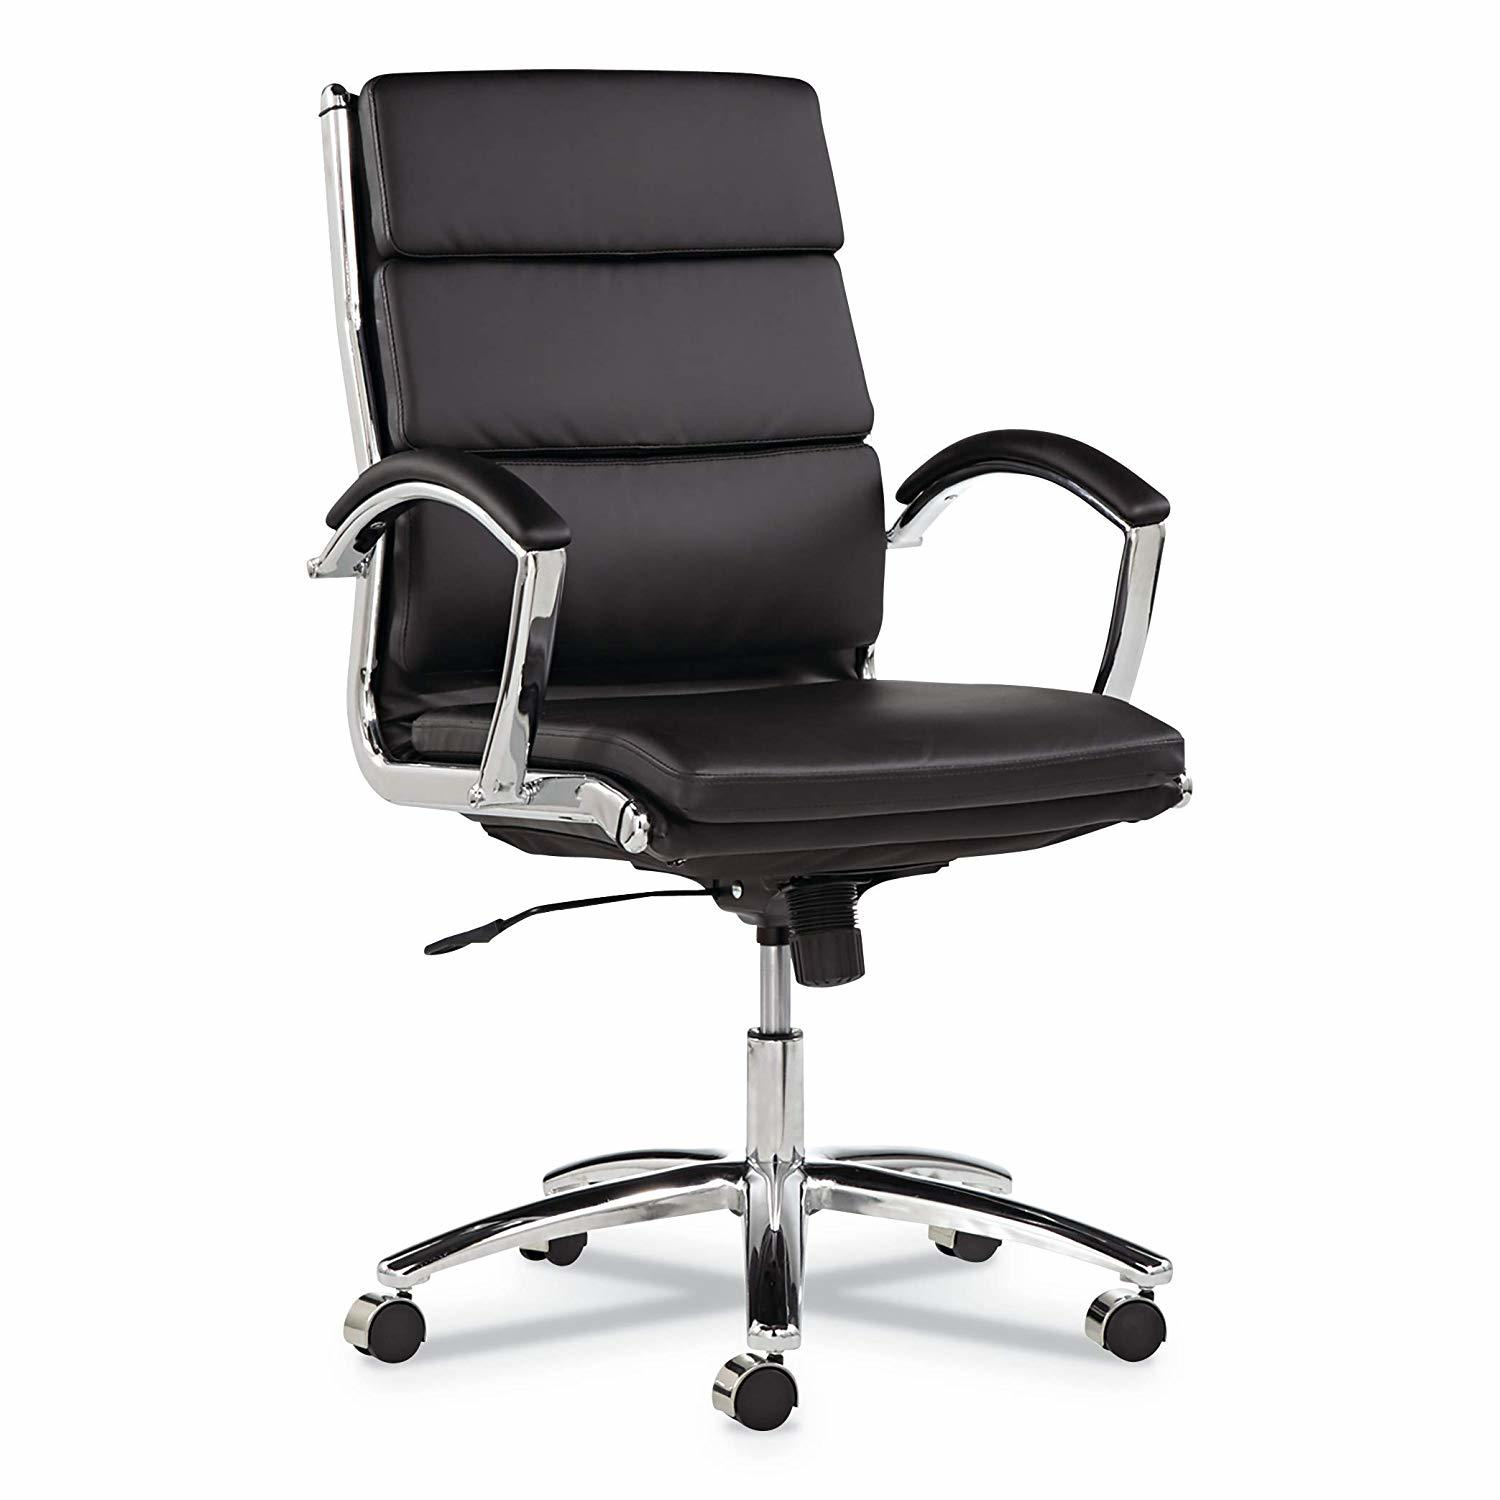 Office Chair For Lower Back Pain Best Office Chair For Back Pain Reviews Best Office